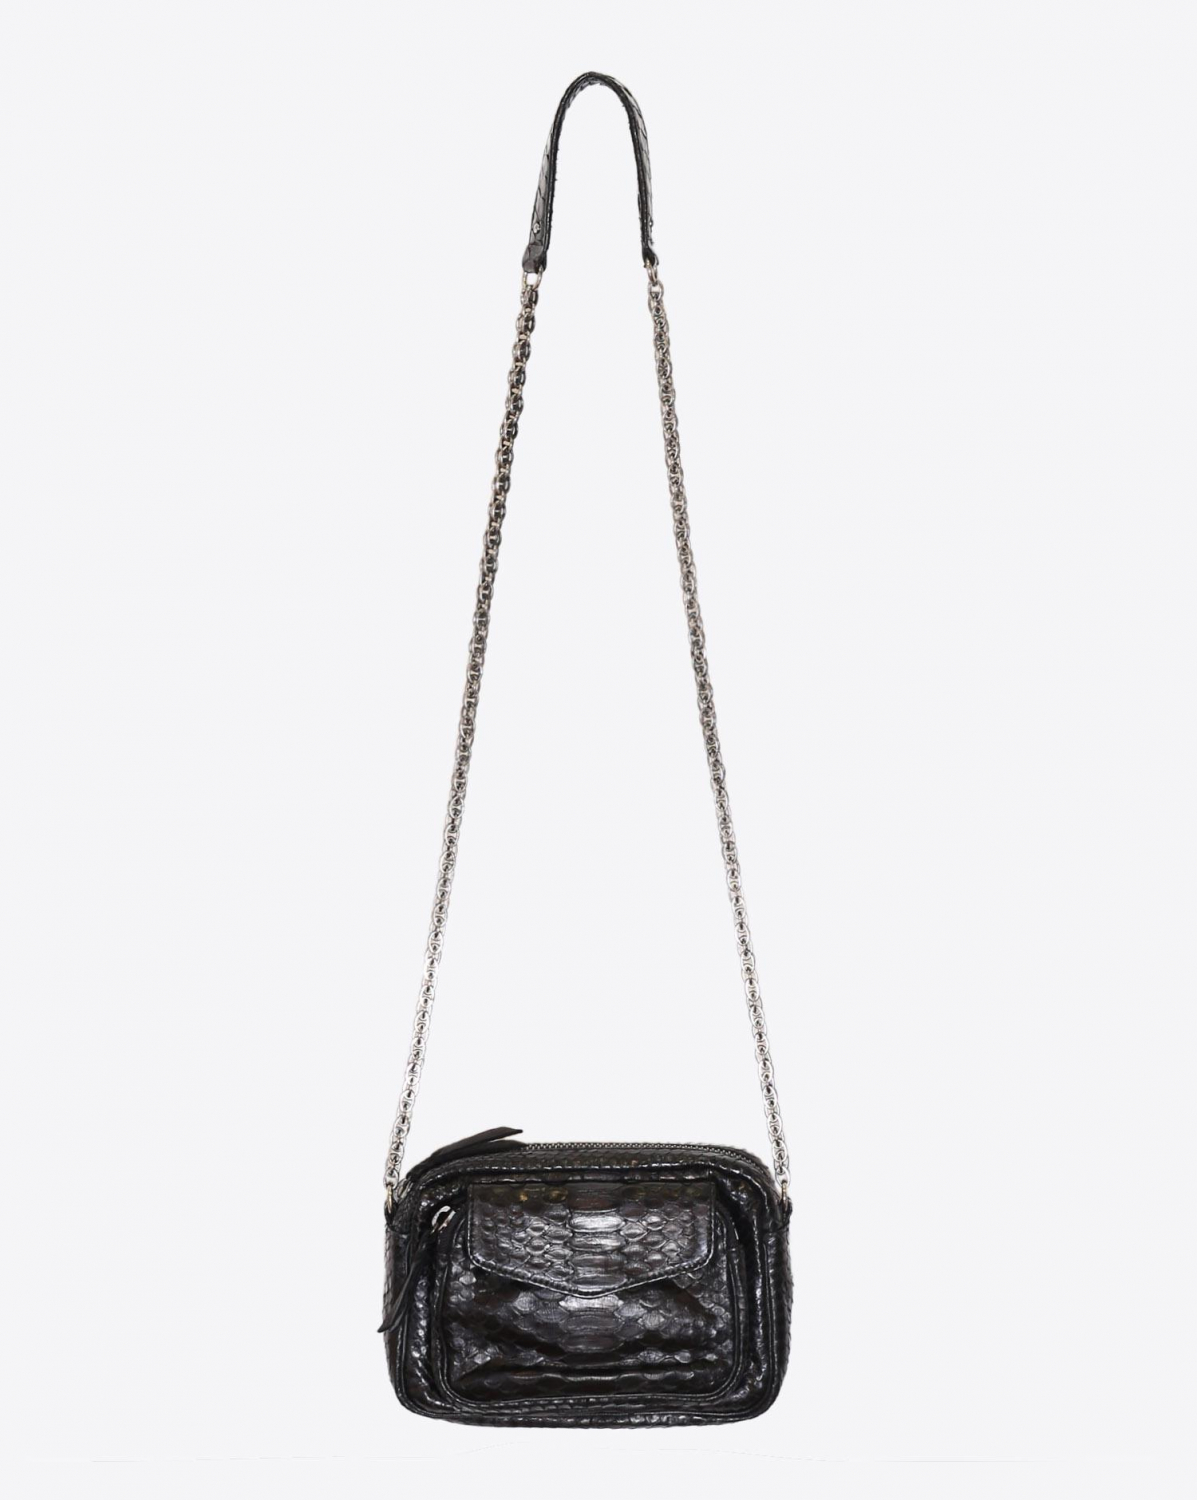 Claris Virot Sac Python Charly Noir Chaine Argent